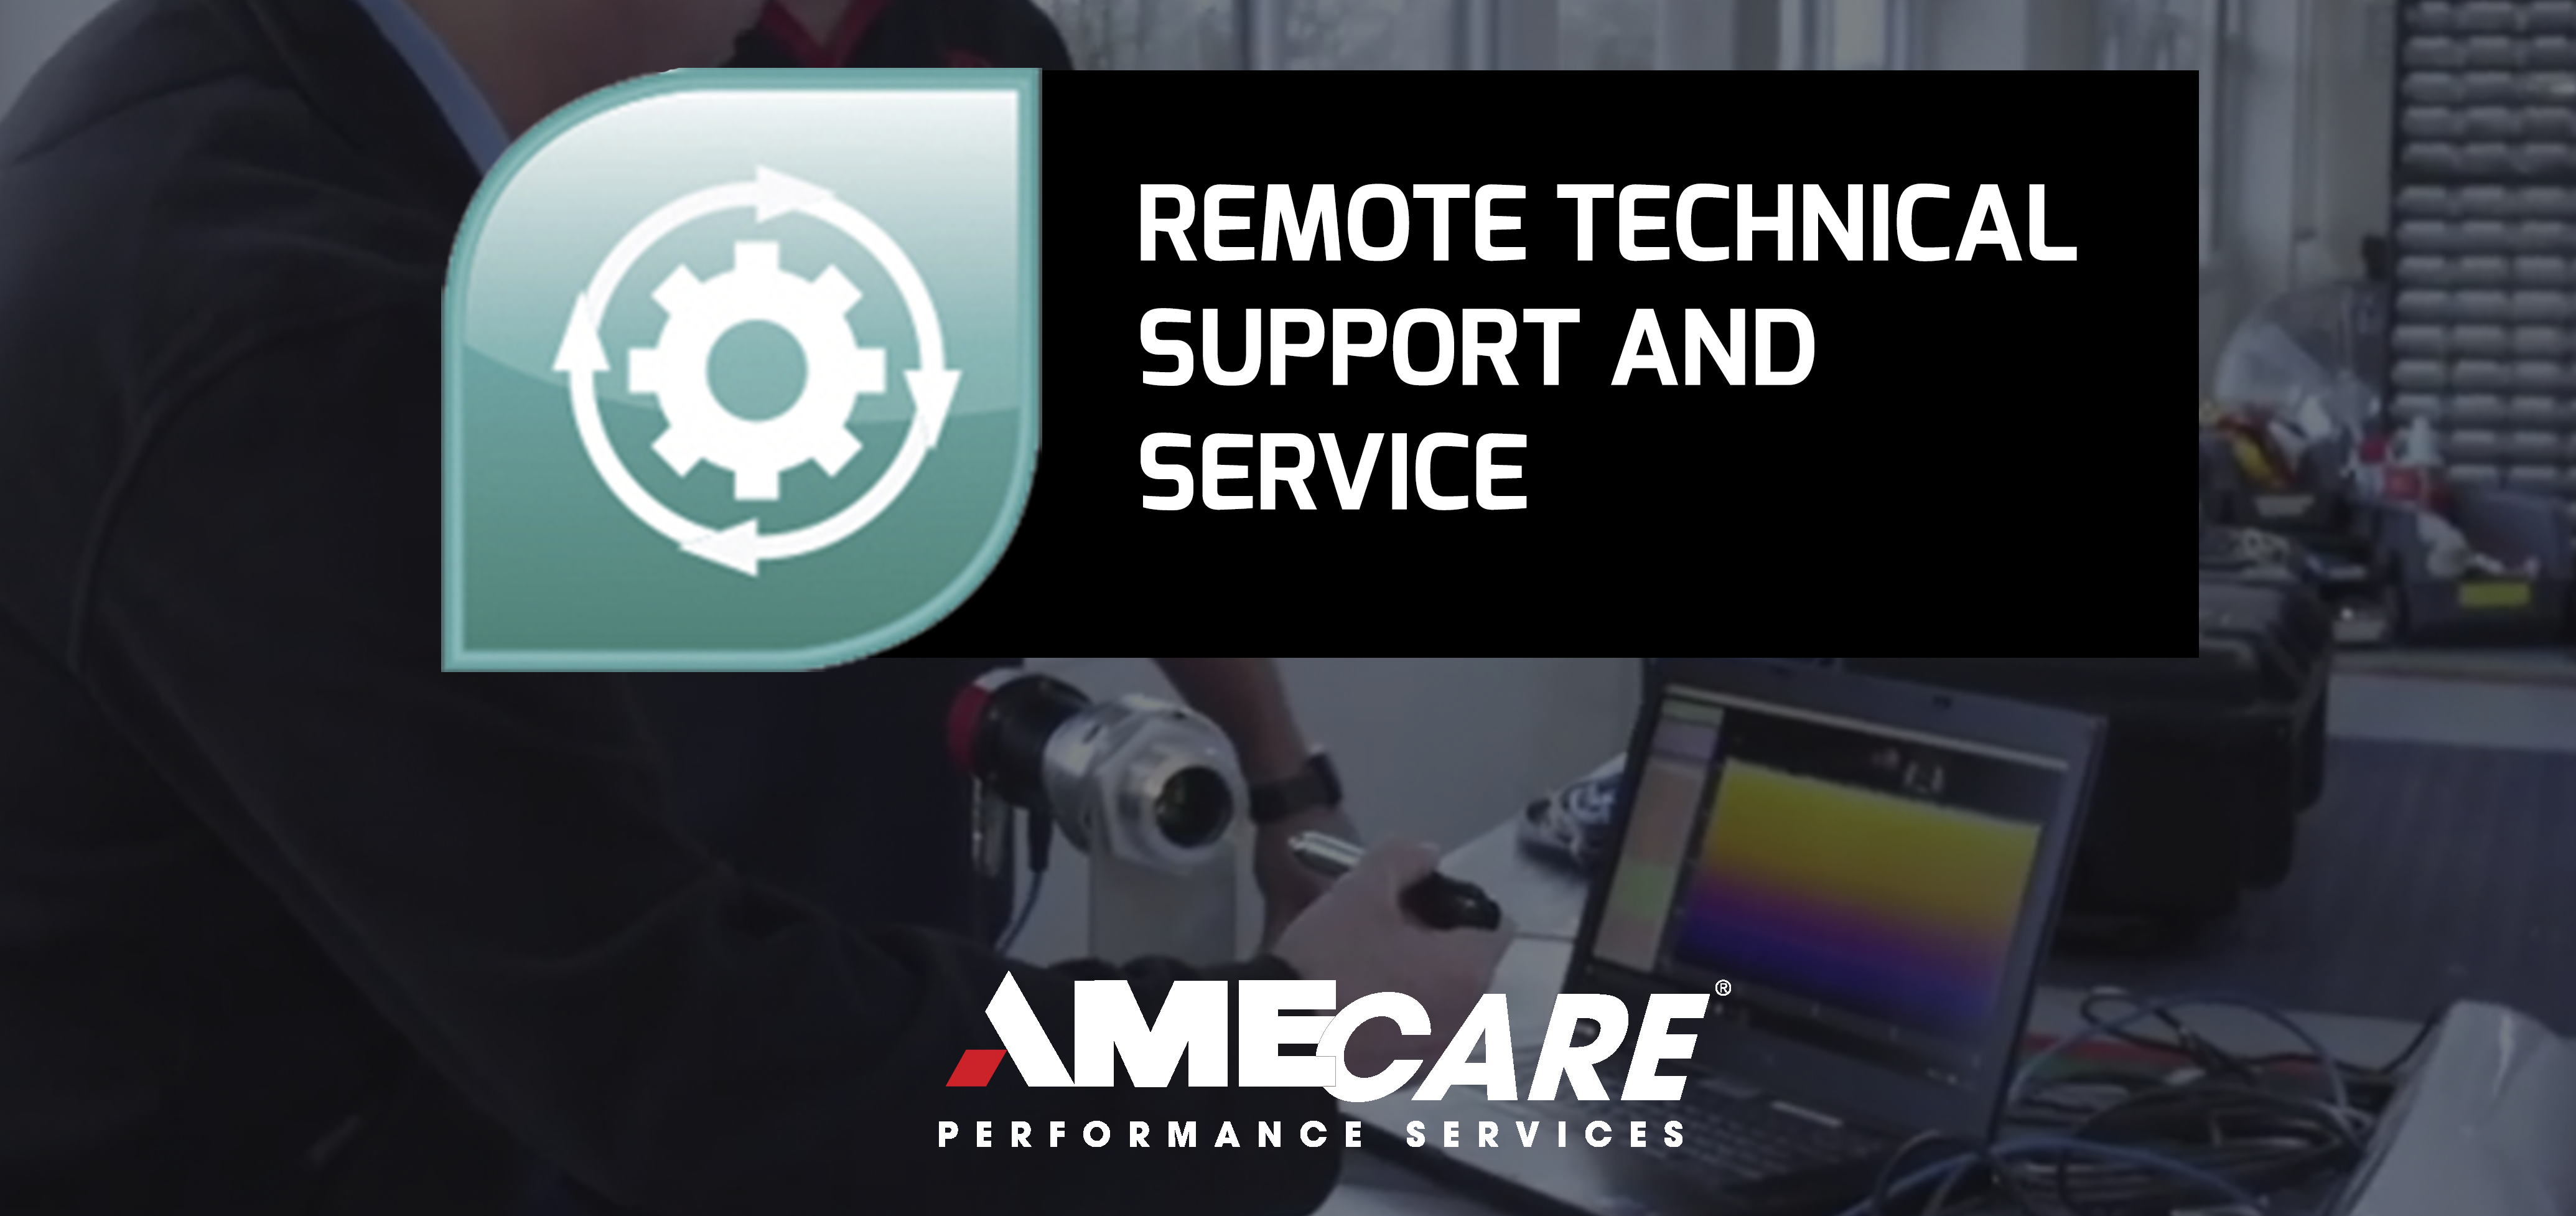 AMECare Remote Technical Support and Service